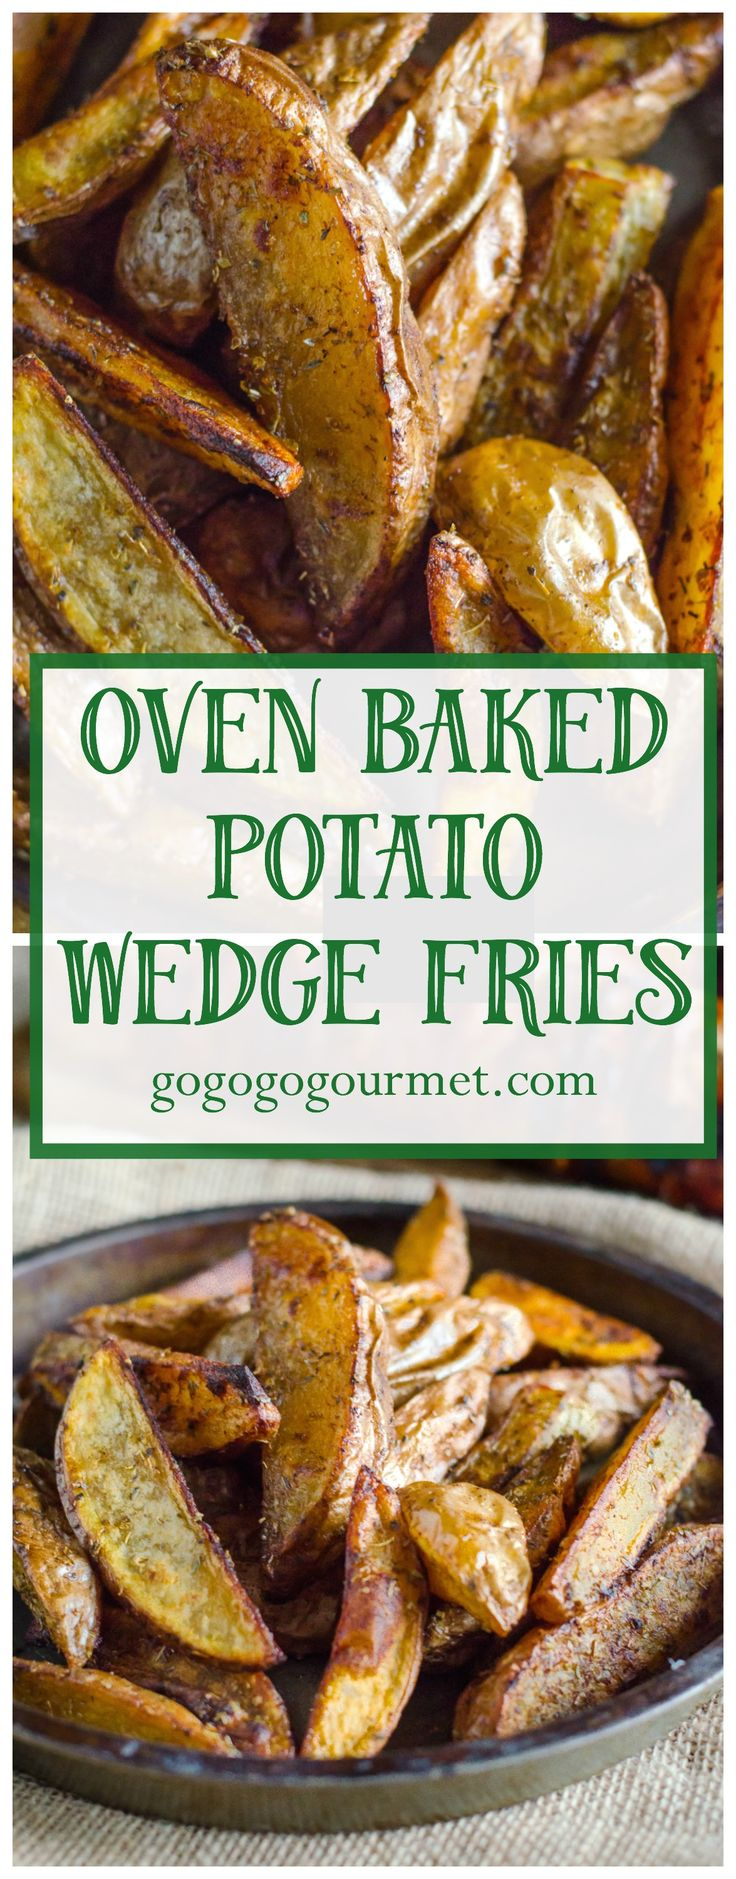 These Oven Baked Potato wedges are PERFECT- crispy on the outside, and soft and fluffy on the inside! Seasoned Oven Baked Potato Wedge Fries | Go Go Go Gourmet @gogogogourmet